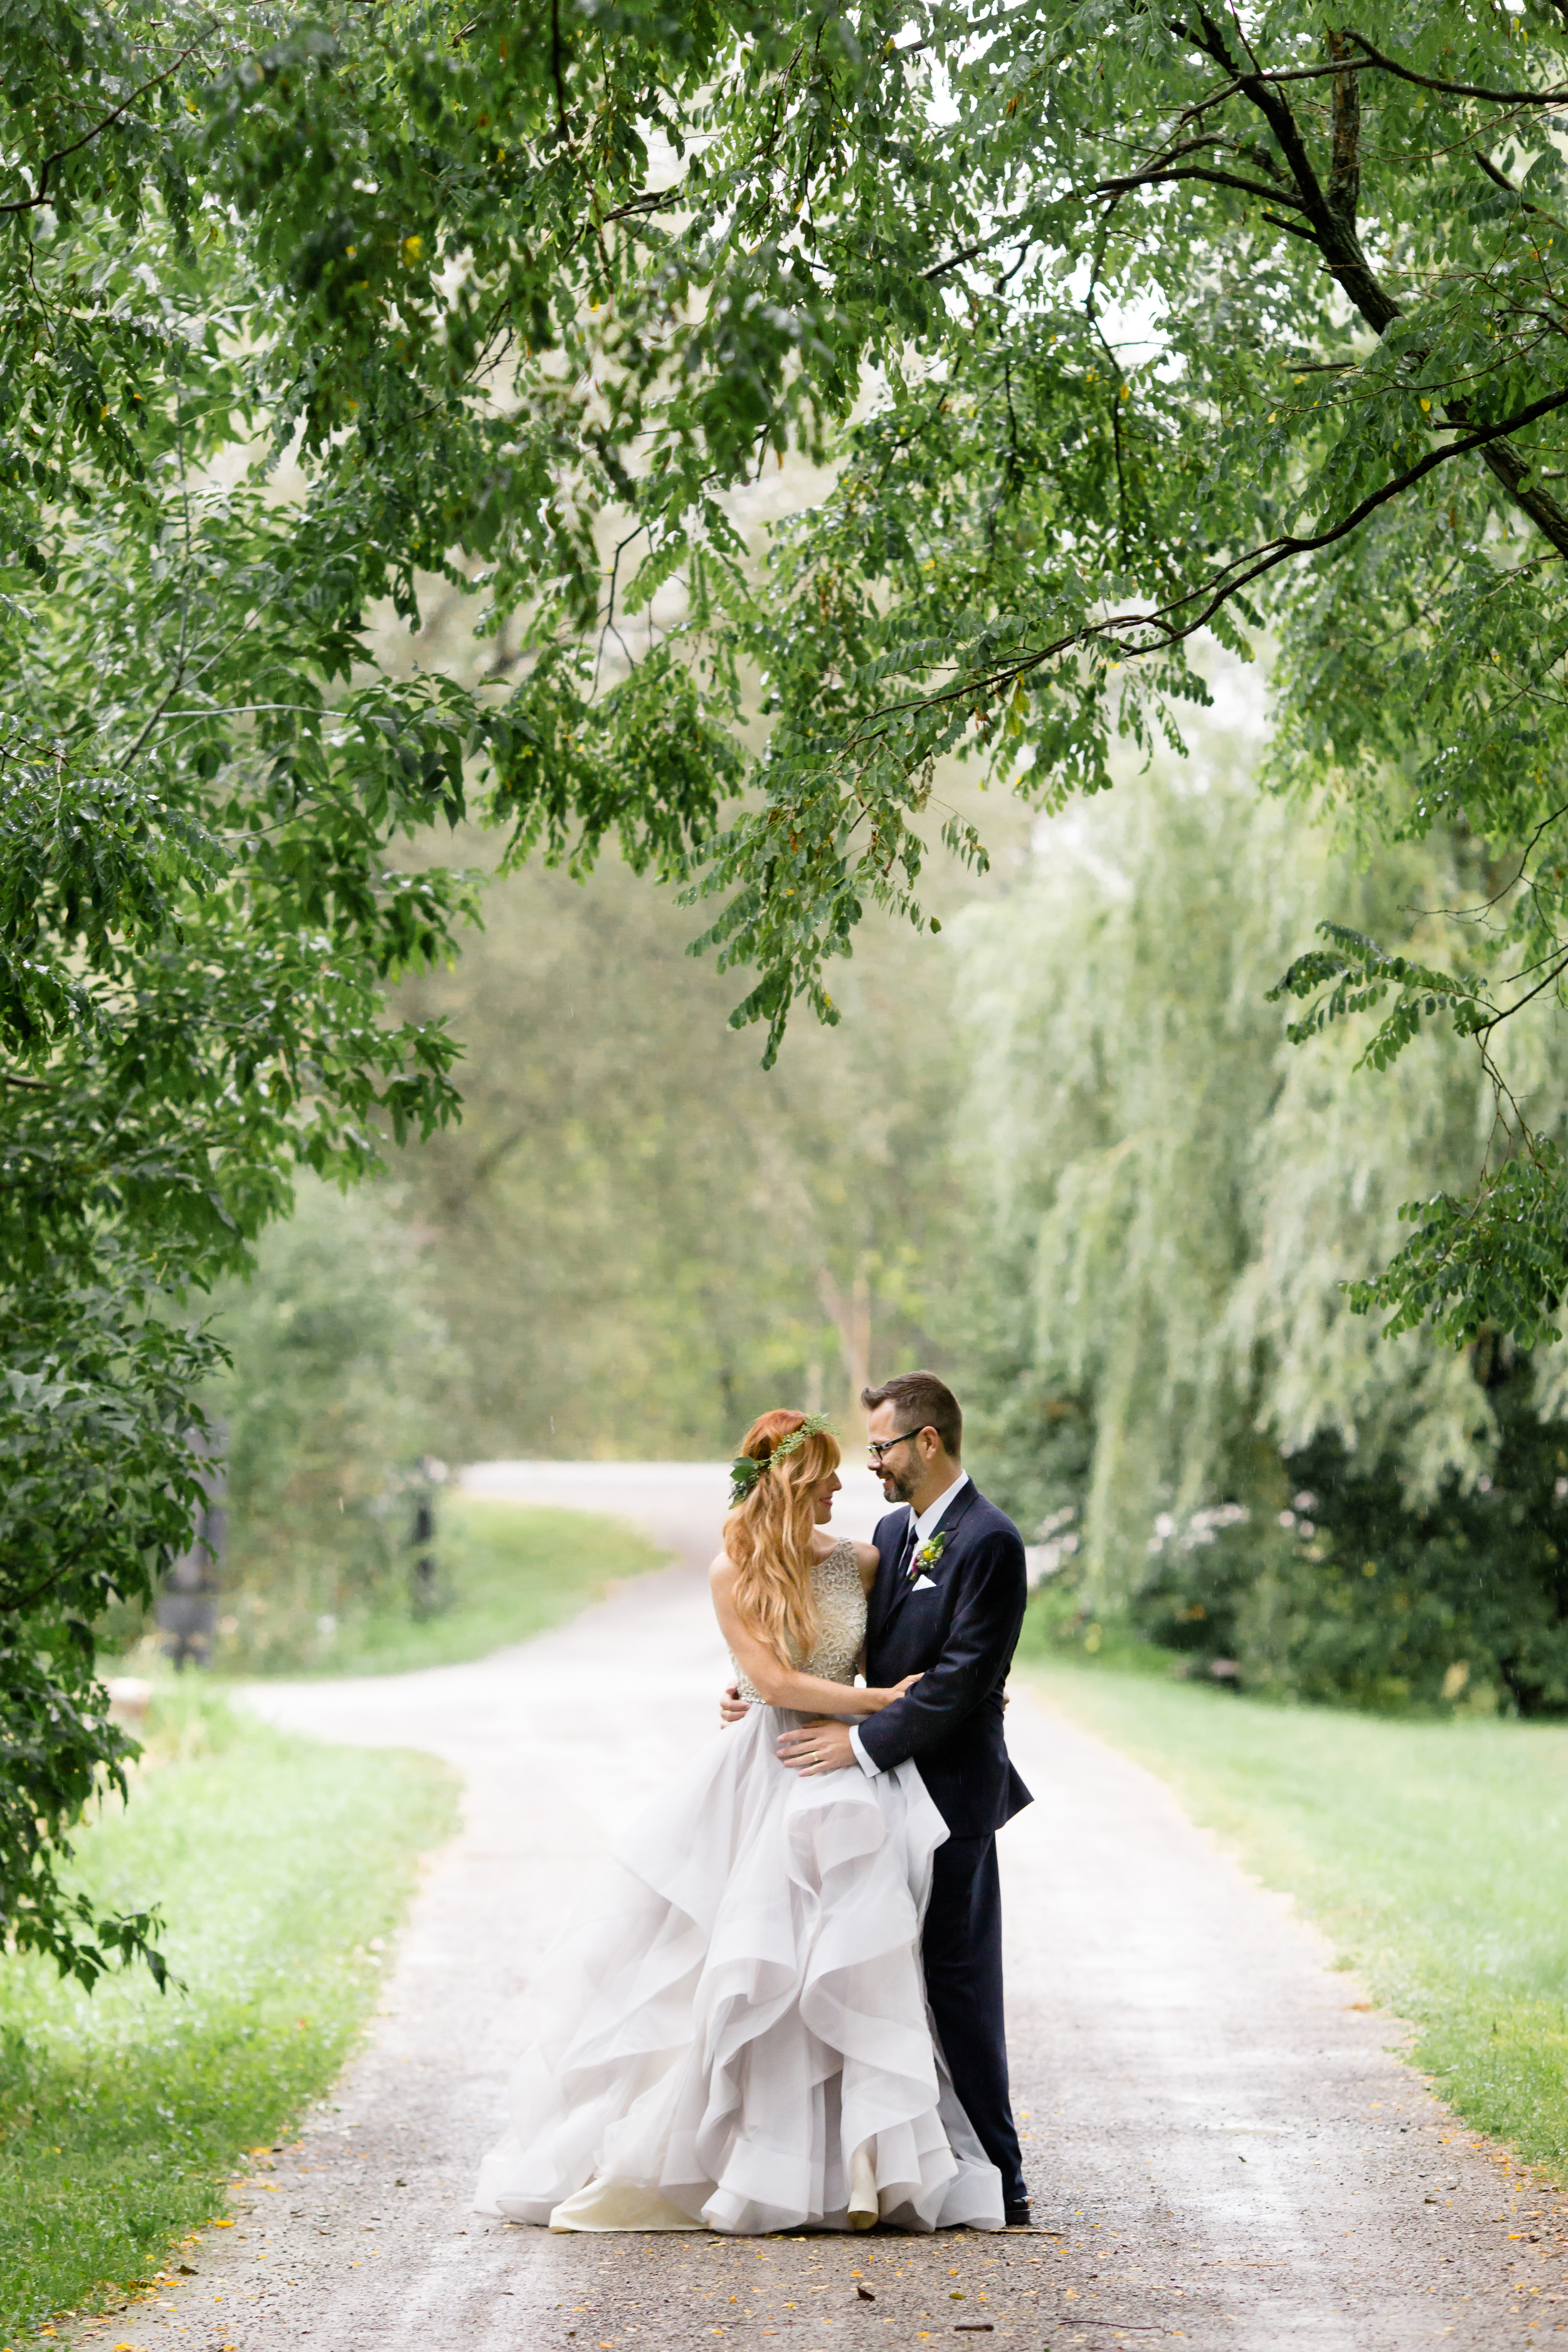 A portrait of the couple after their ceremony at Stonefields